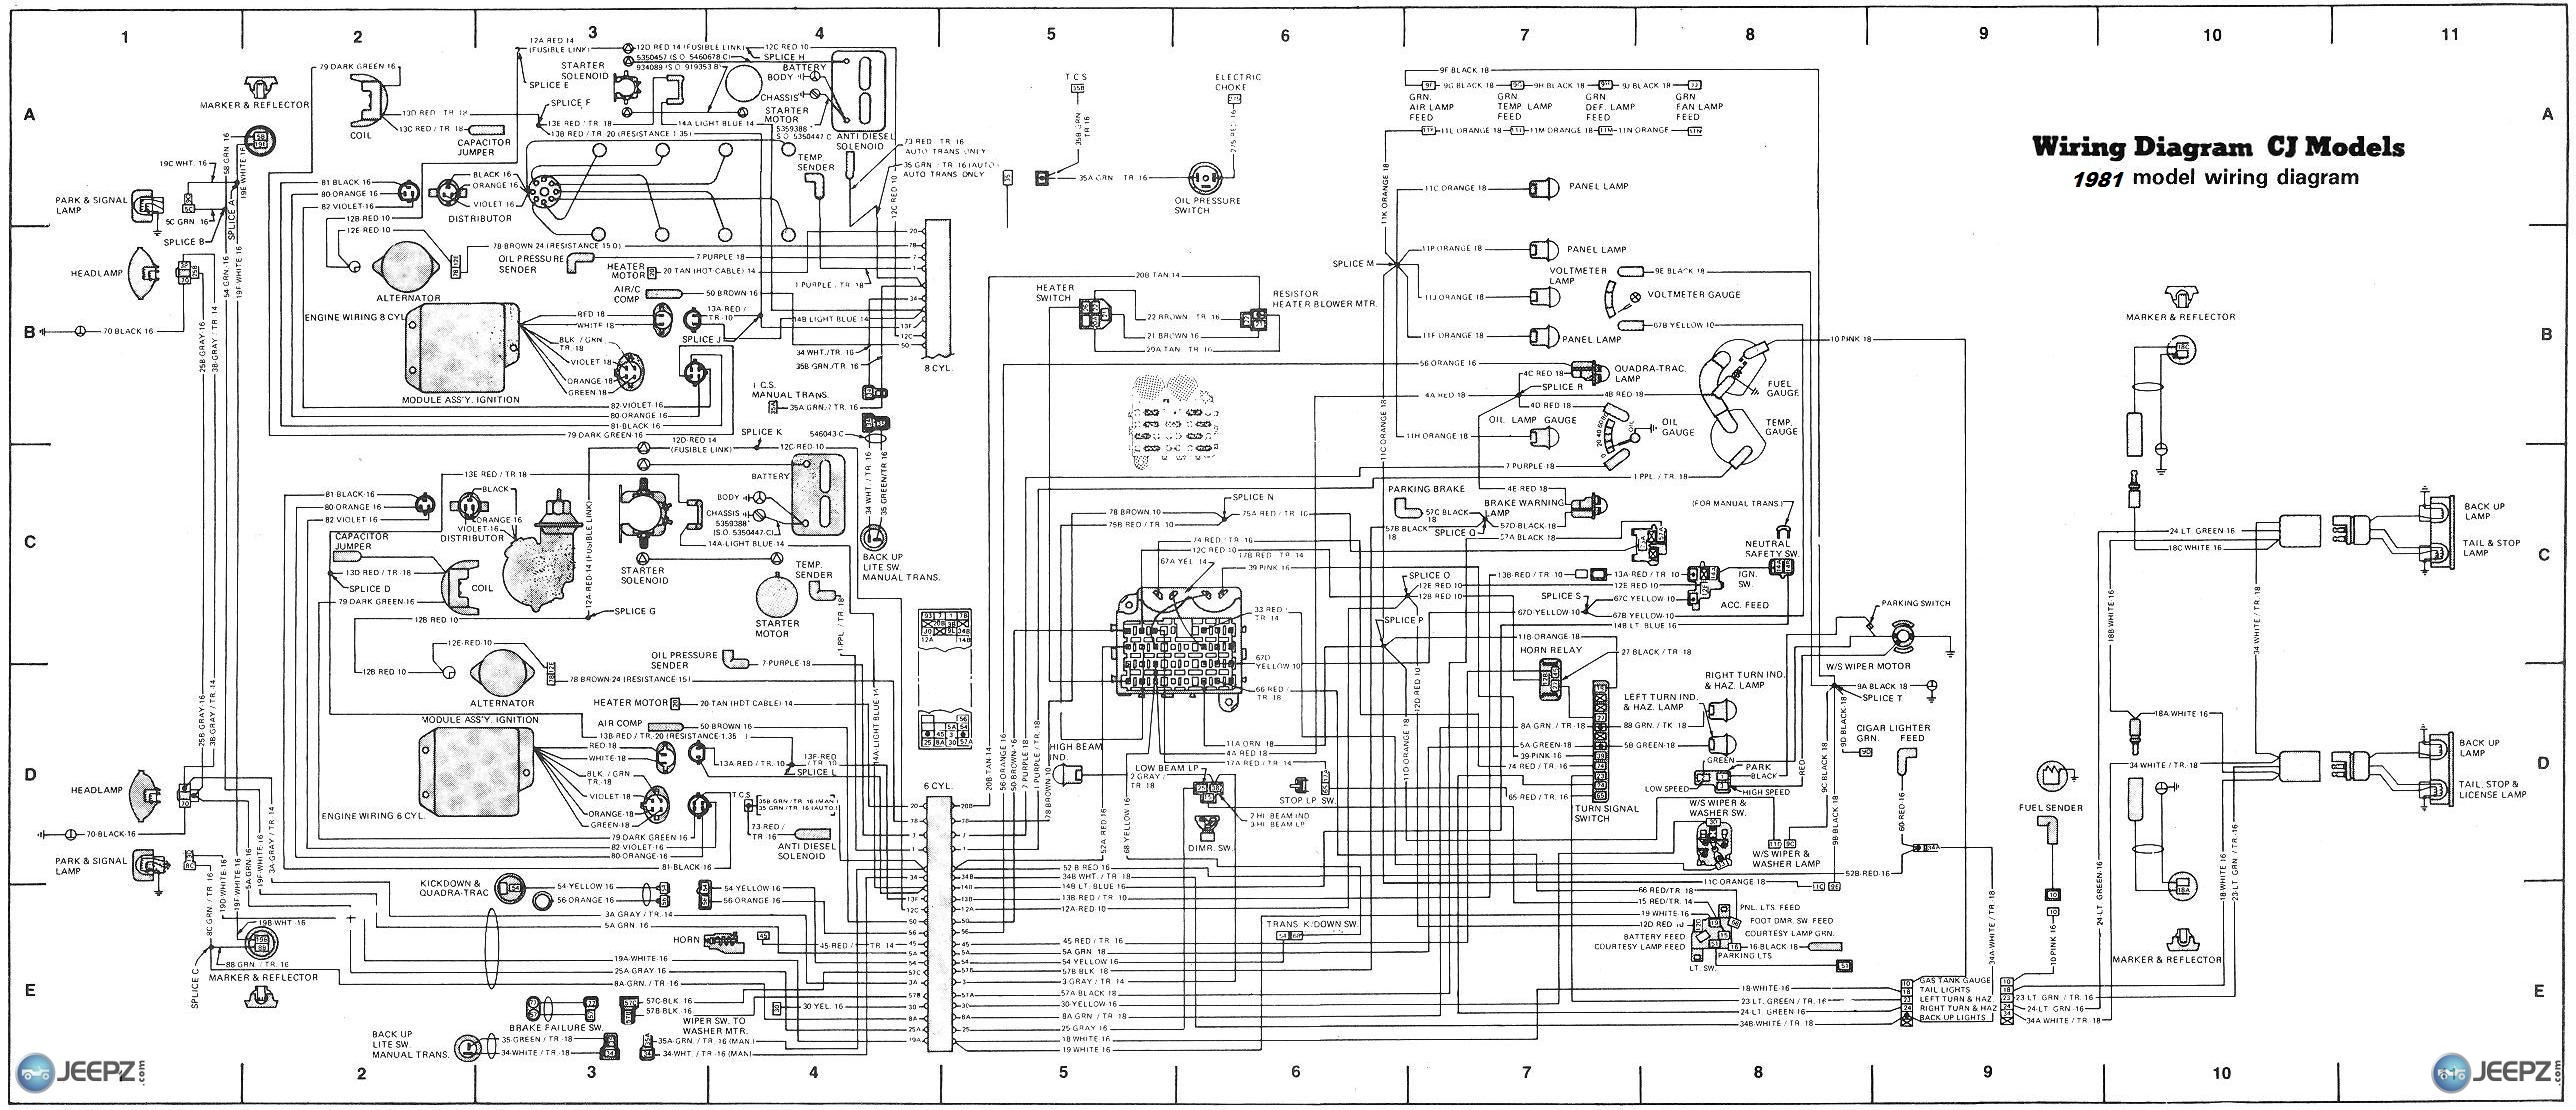 7993d1301845049 cj 7 wire diagram cj wiring diagram 1981?resized665%2C2876ssld1 opel corsa b wiring schematic efcaviation com vauxhall zafira fuse box diagram 2002 at crackthecode.co